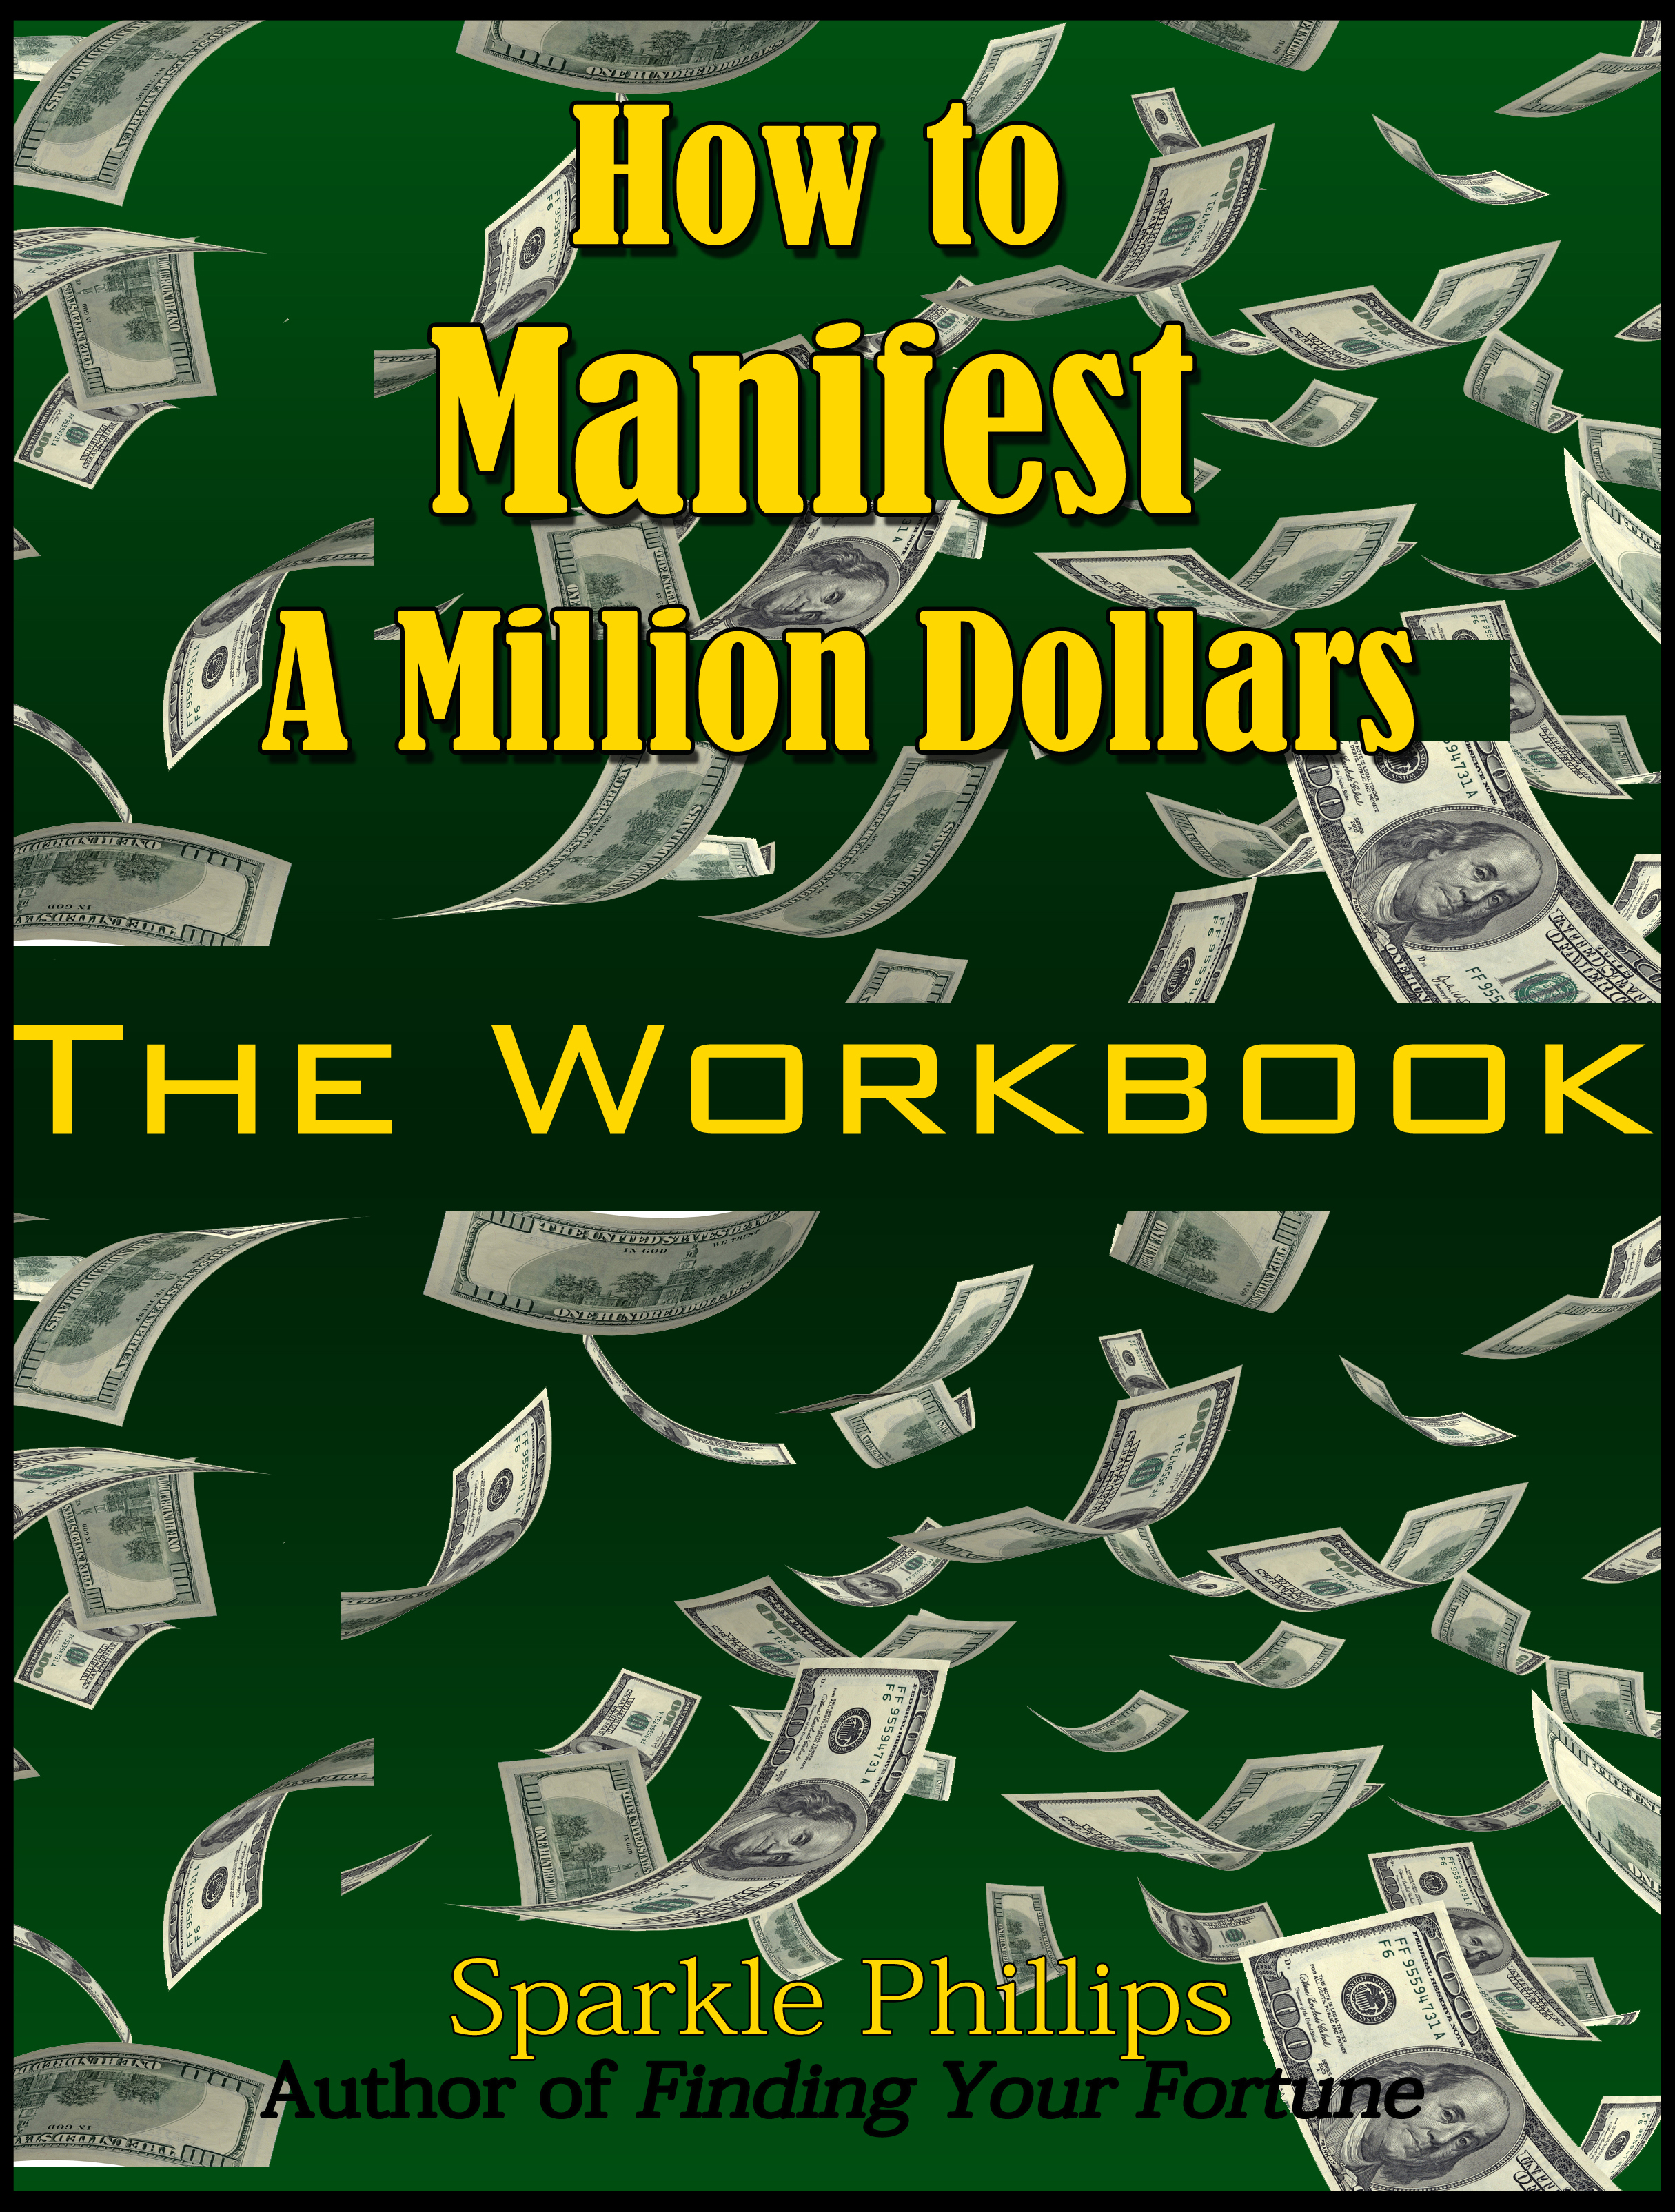 Amazon.com: How to Manifest a Million Dollars: The Workbook eBook: Phillips, Sparkle: Kindle Store